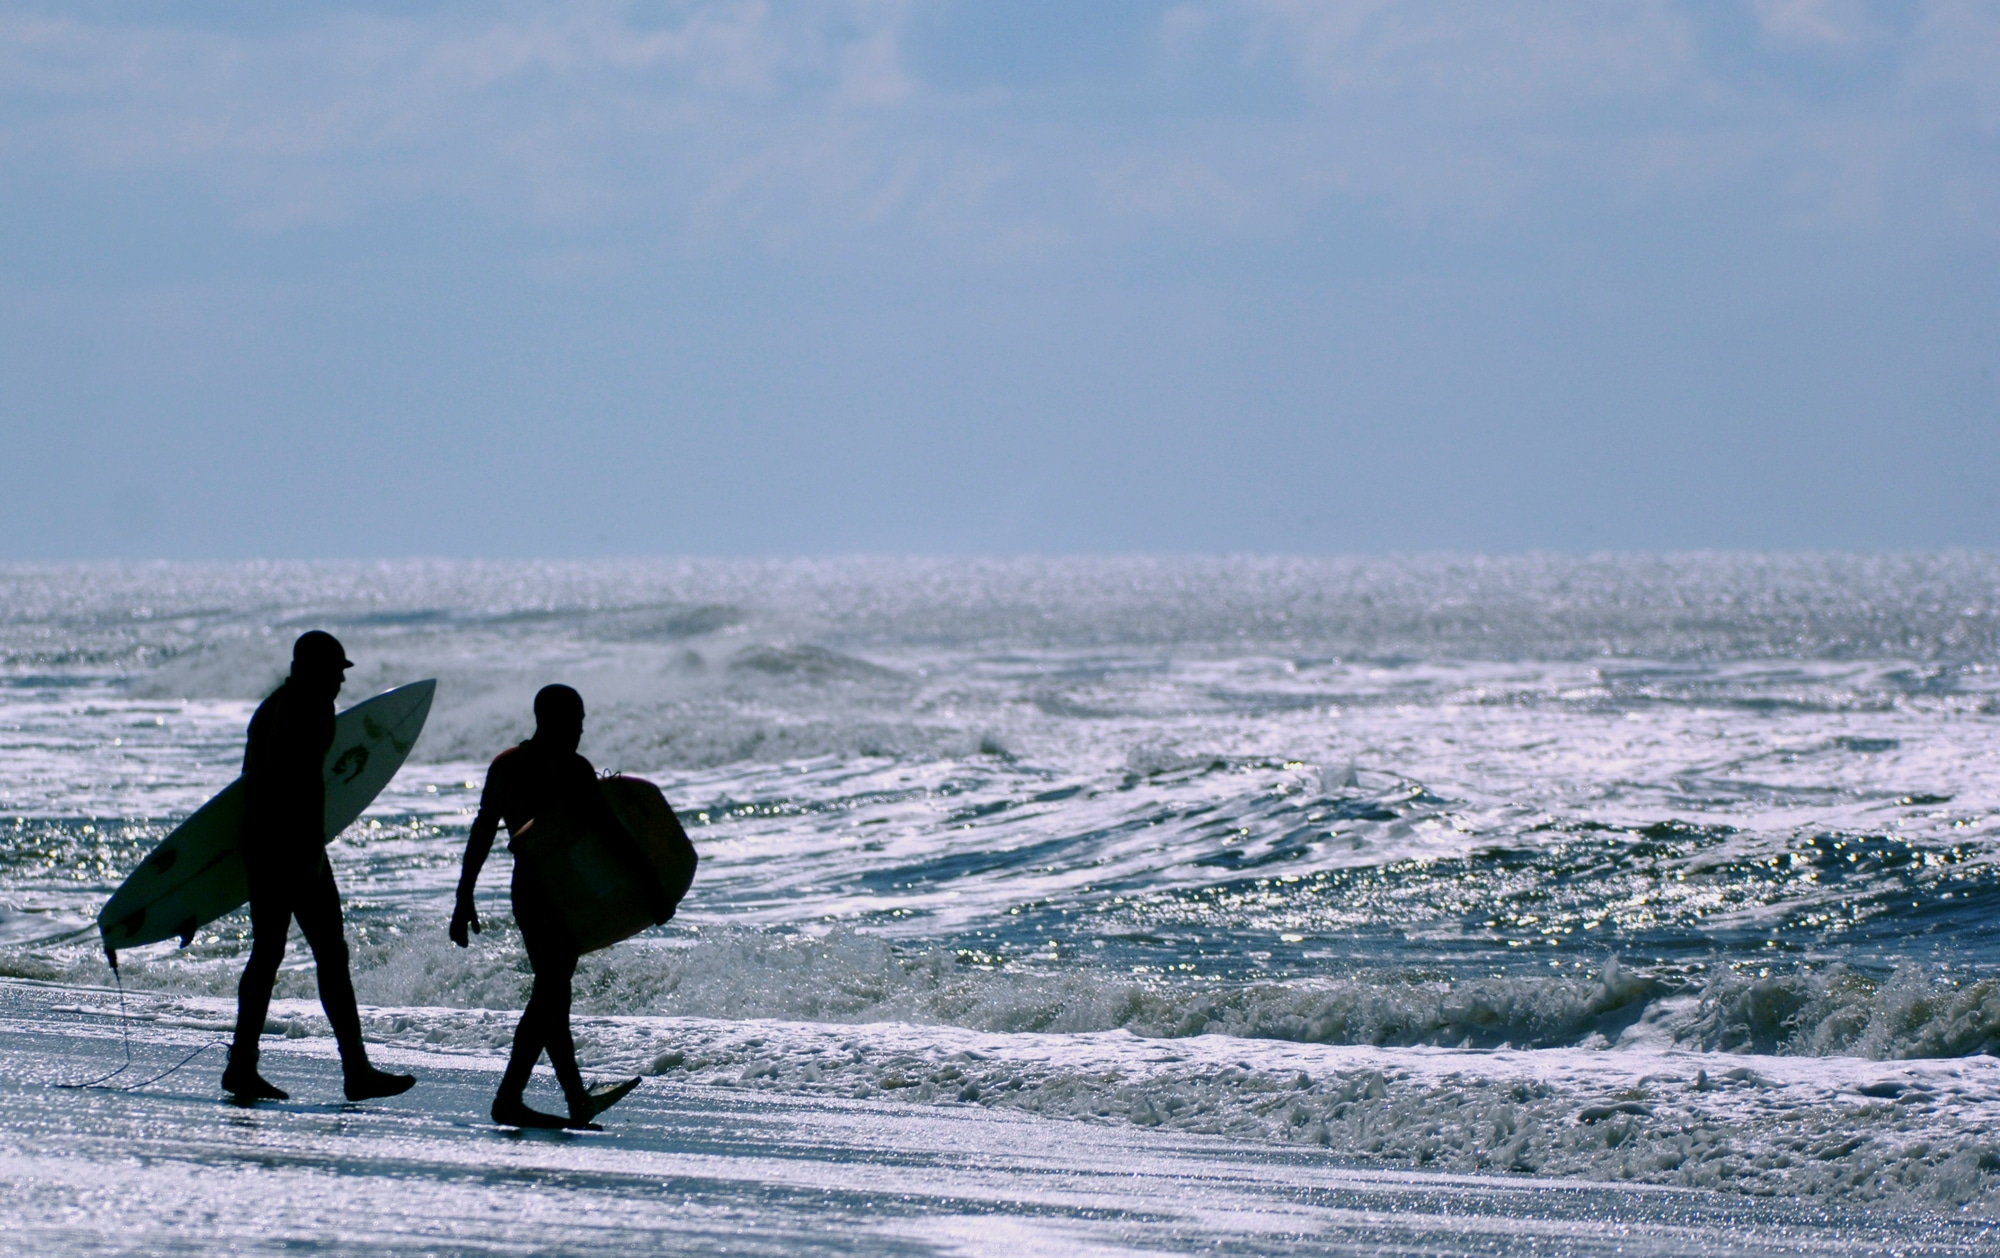 A pair of surfers head toward the waves